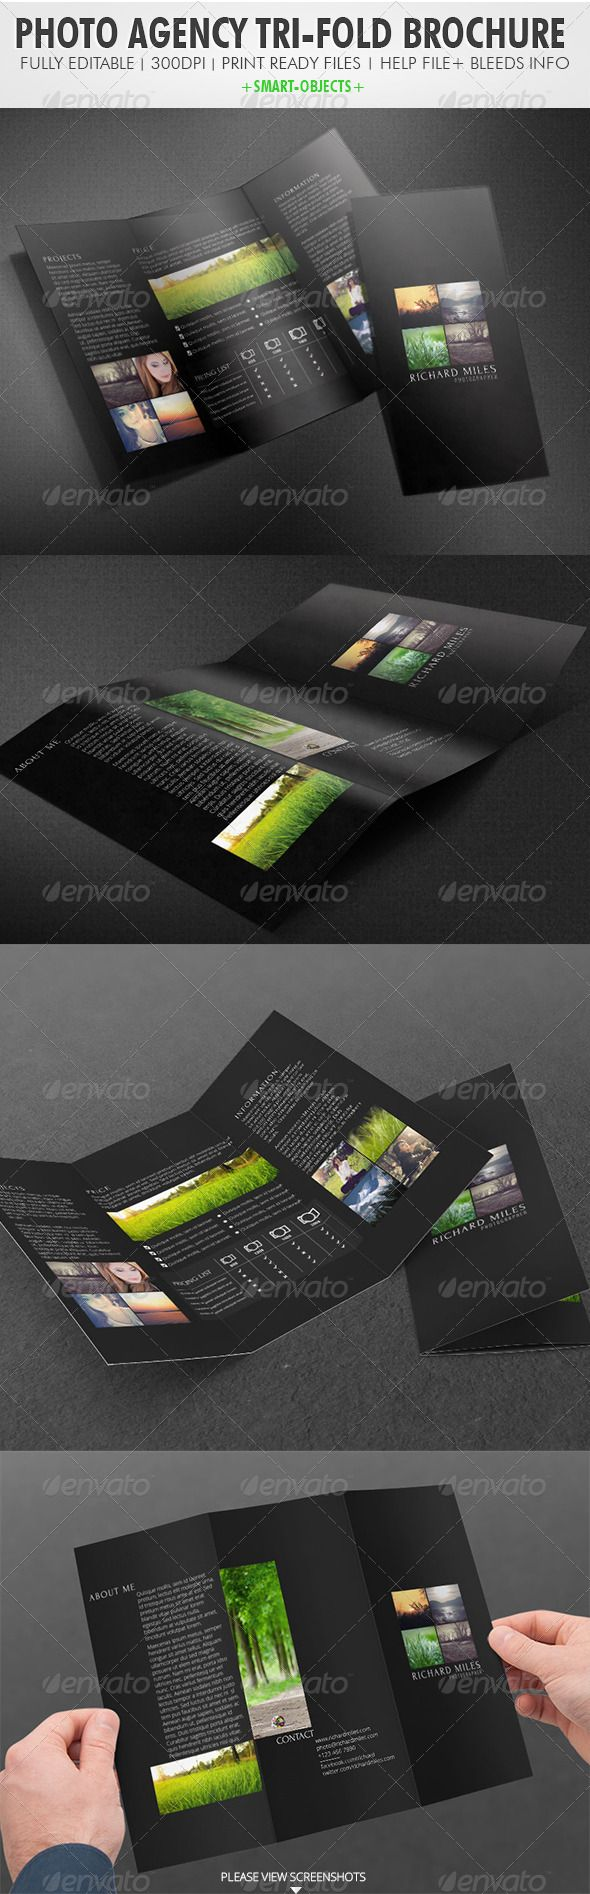 Photo Agency Tri-fold Brochure  http://graphicriver.net/item/photo-agency-trifold-brochure/3966701?WT.ac=portfolio_1=portfolio_author=Realstar